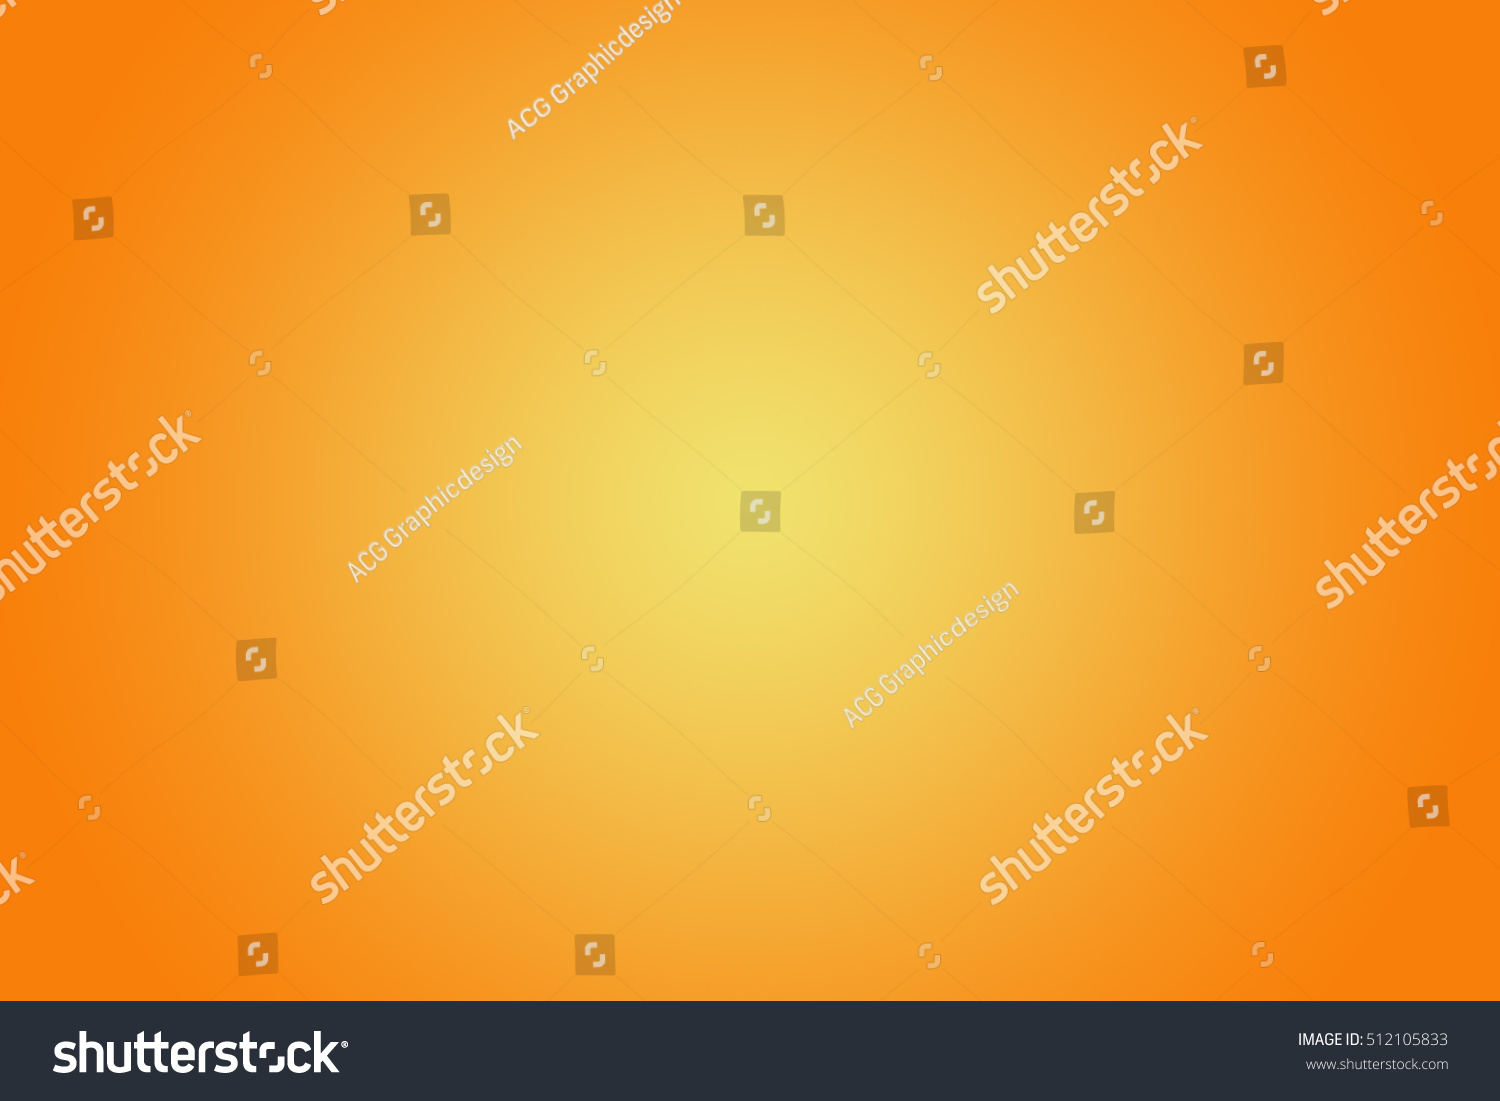 d5ef92f9d67 Orange Abstract Gold Background Yellow Color Stock Photo (Edit Now ...